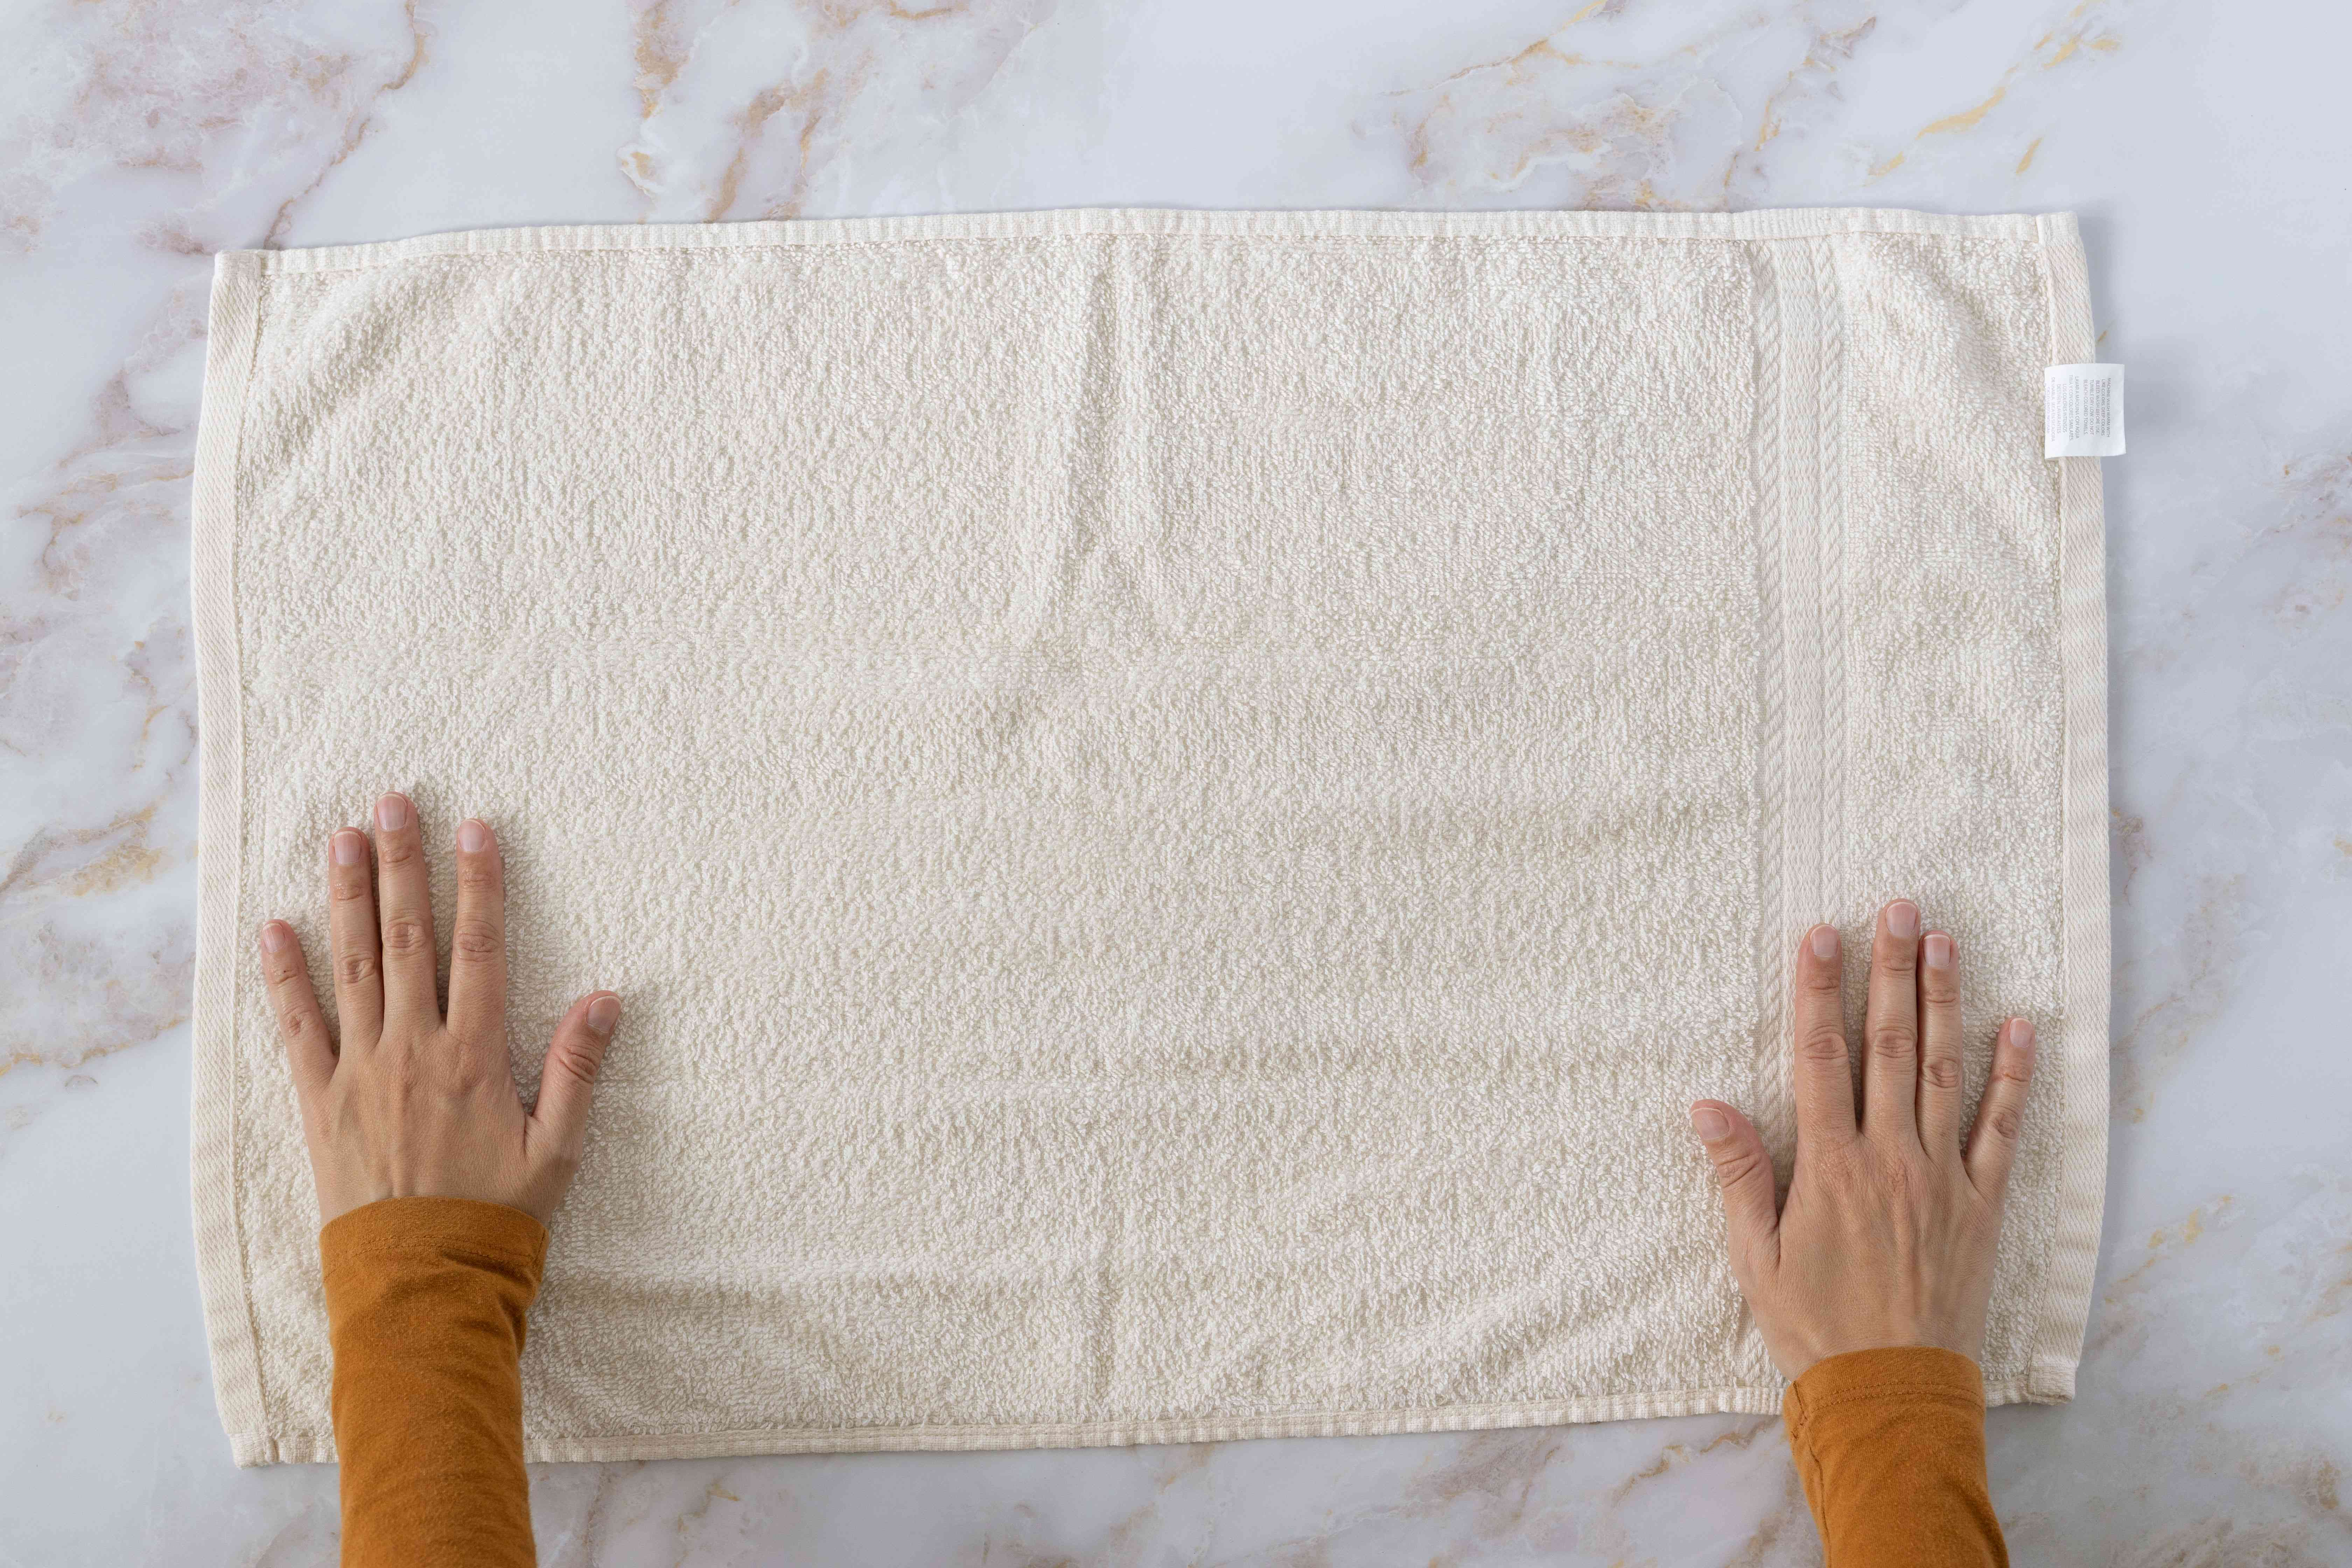 Large cream towel laid flat on marbles surface